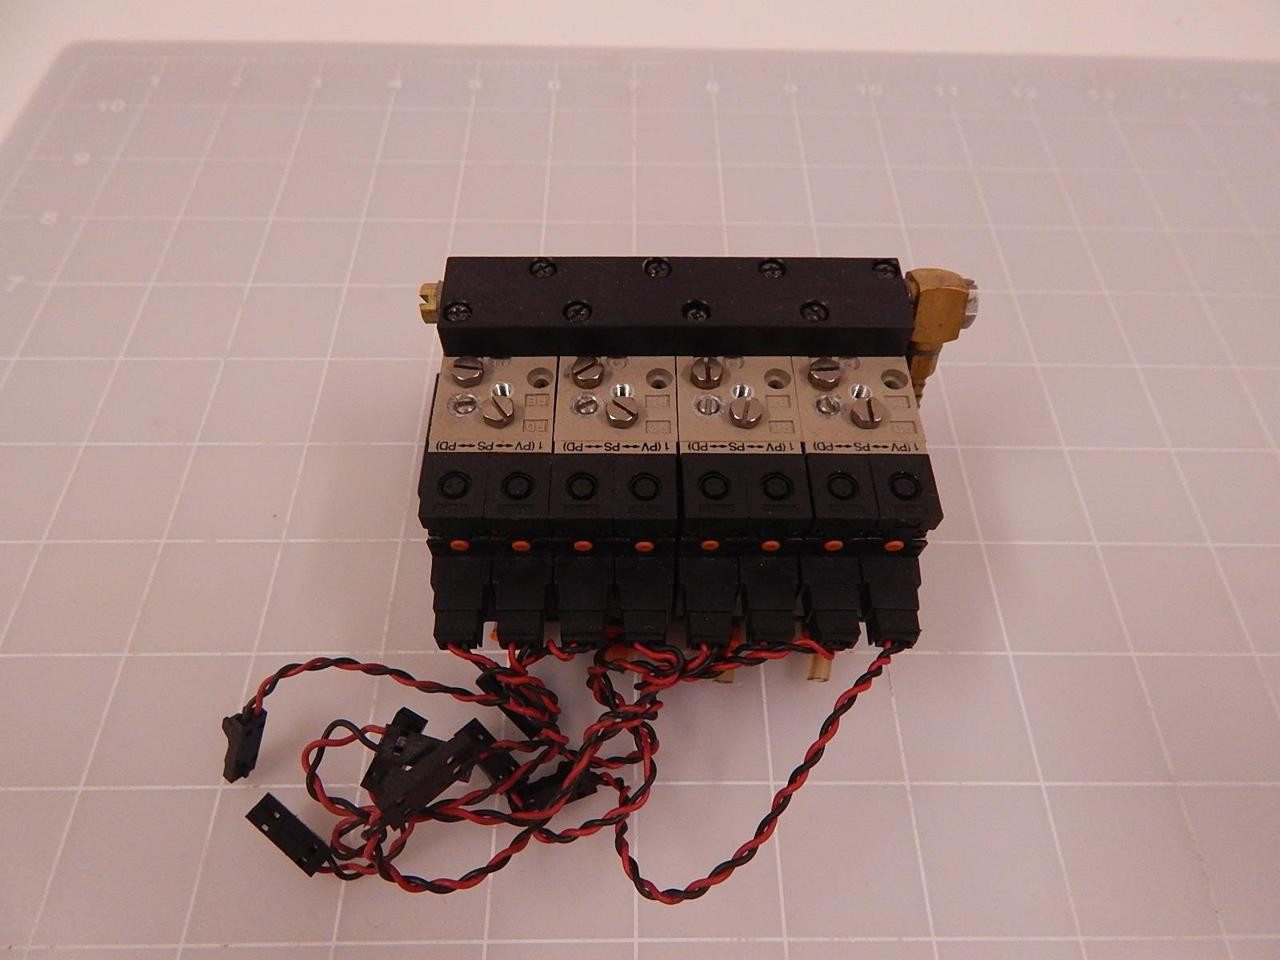 Assembly Of Smc Nzx1071 K16lz Vj114 6loz Solenoid Valves W Vacuum How To Wire A Switch Image 1